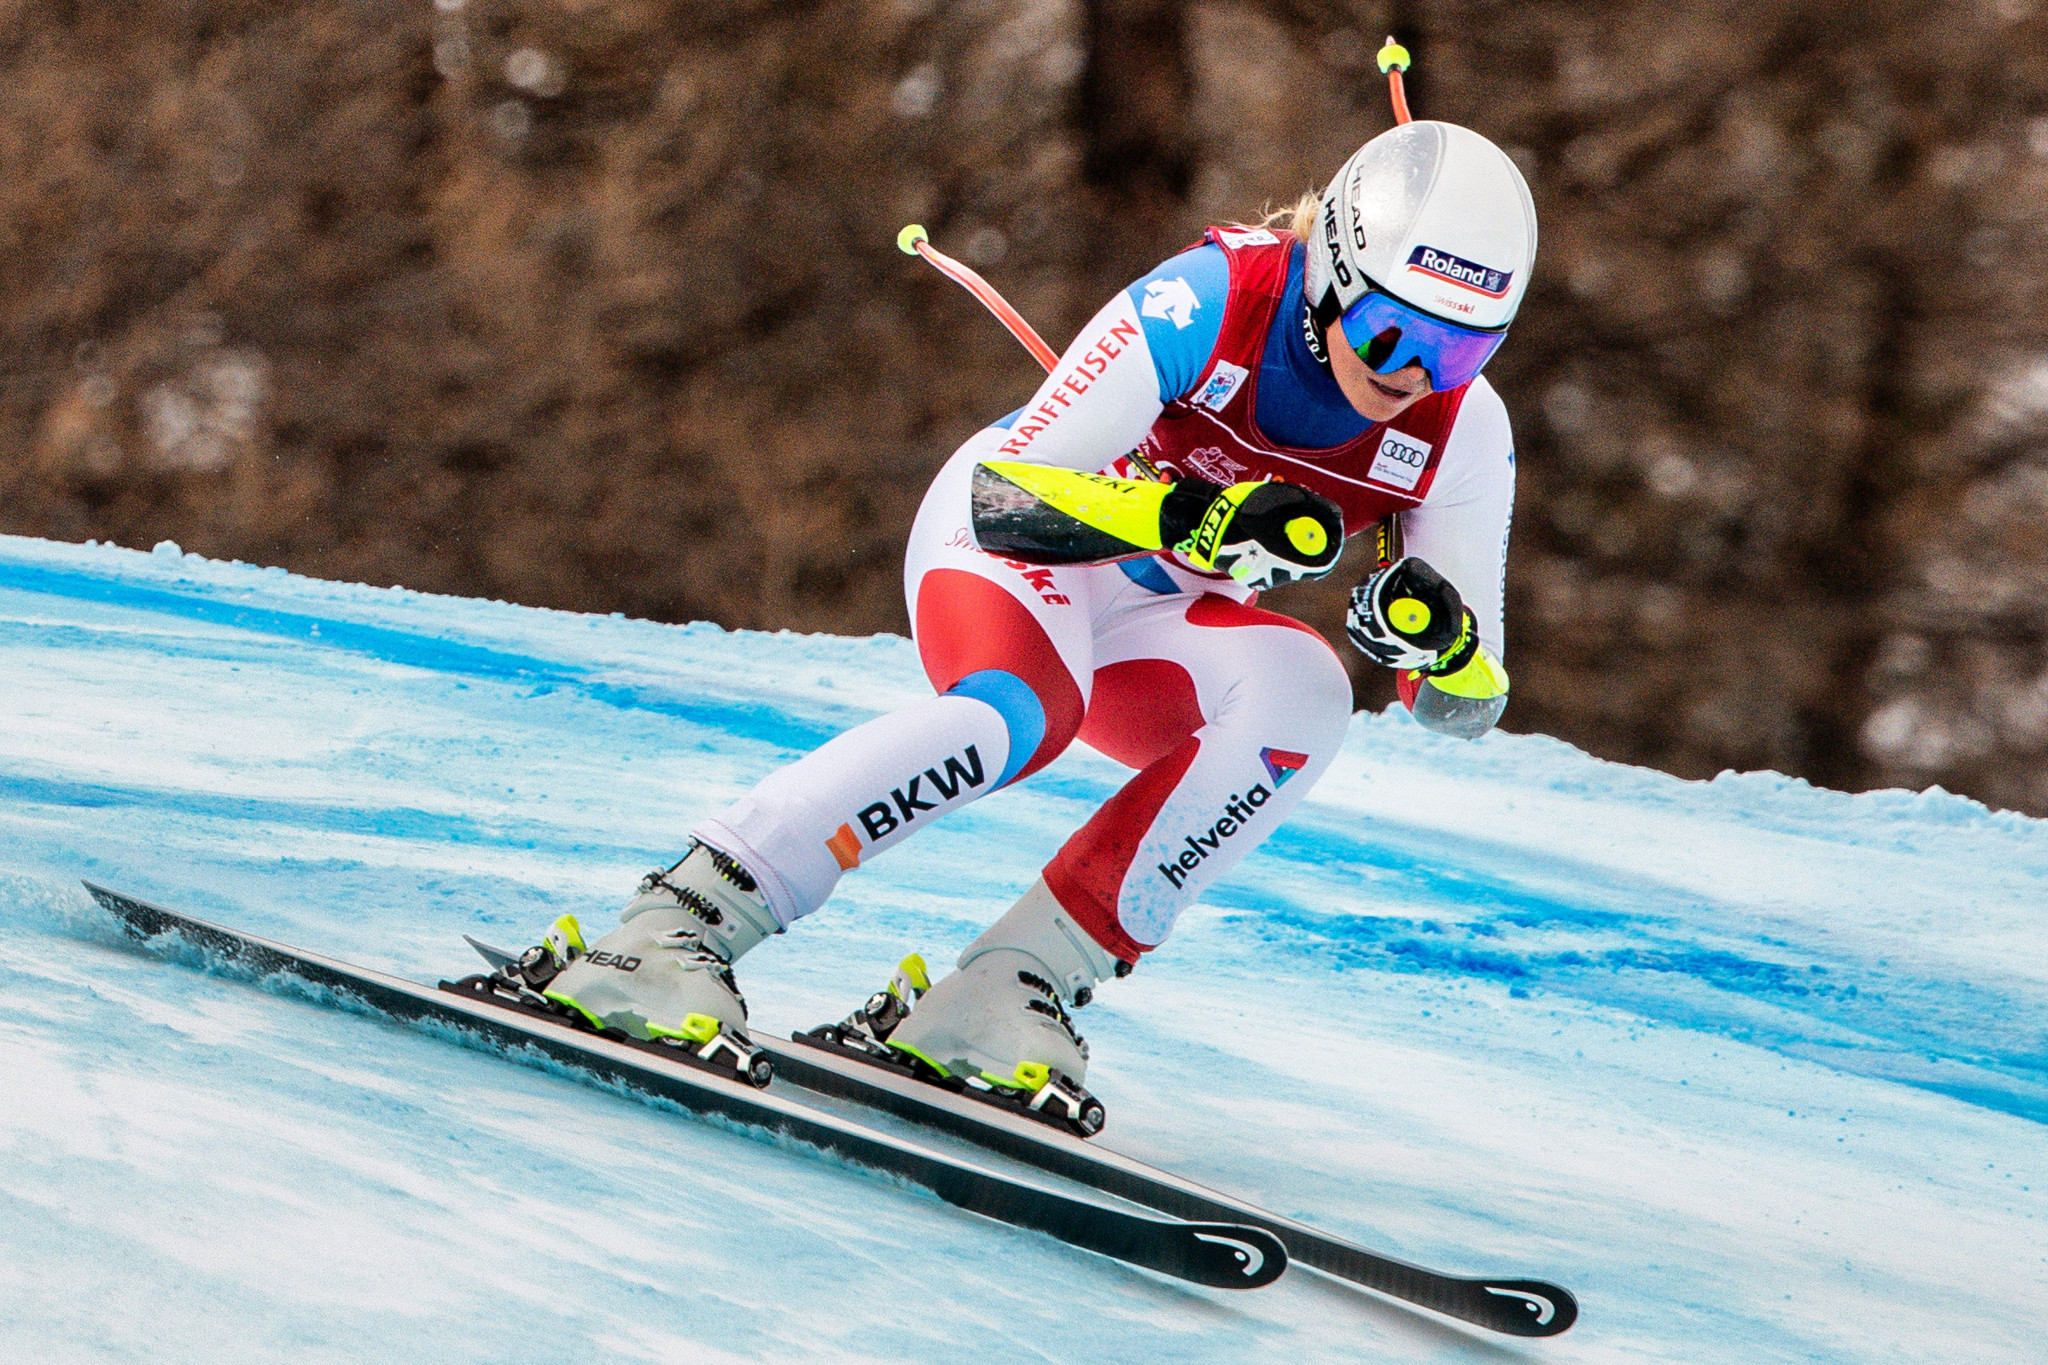 Corinne Suter will hope to secure victory in St Anton ©Getty Images